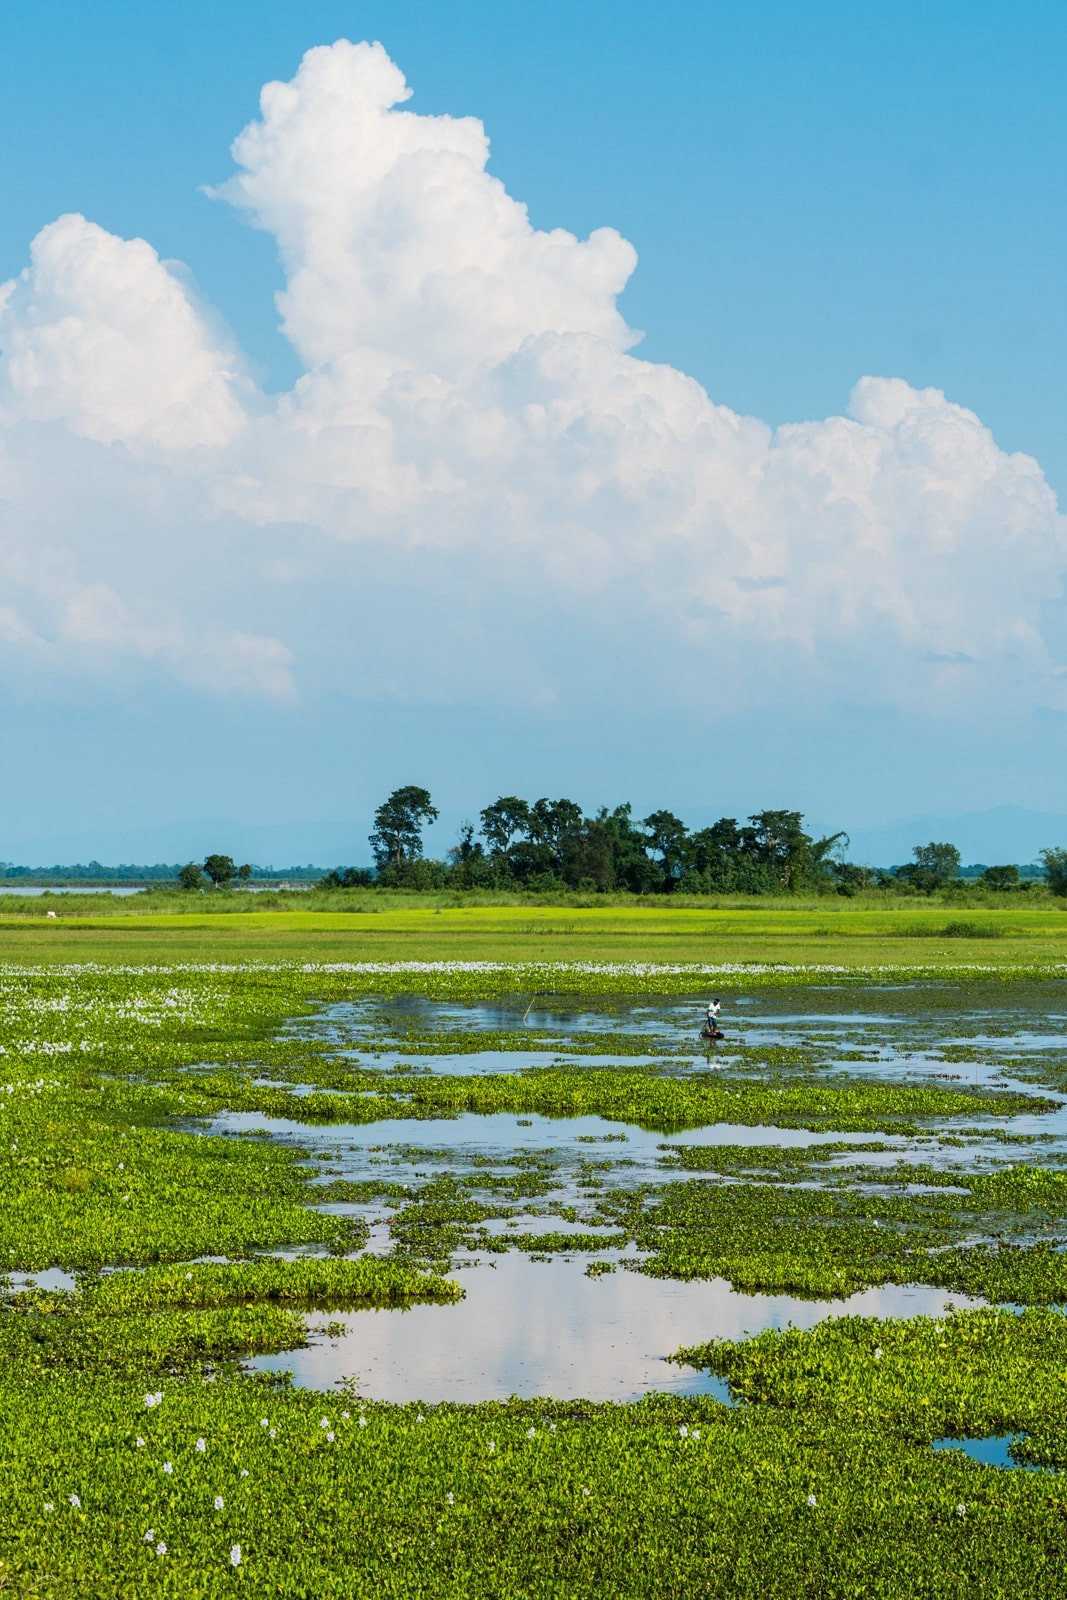 Majuli island is an idyllic river island in Assam state, Northeast India. If you're looking for a place to relax in India, Majuli island is the perfect off the beaten track destination.